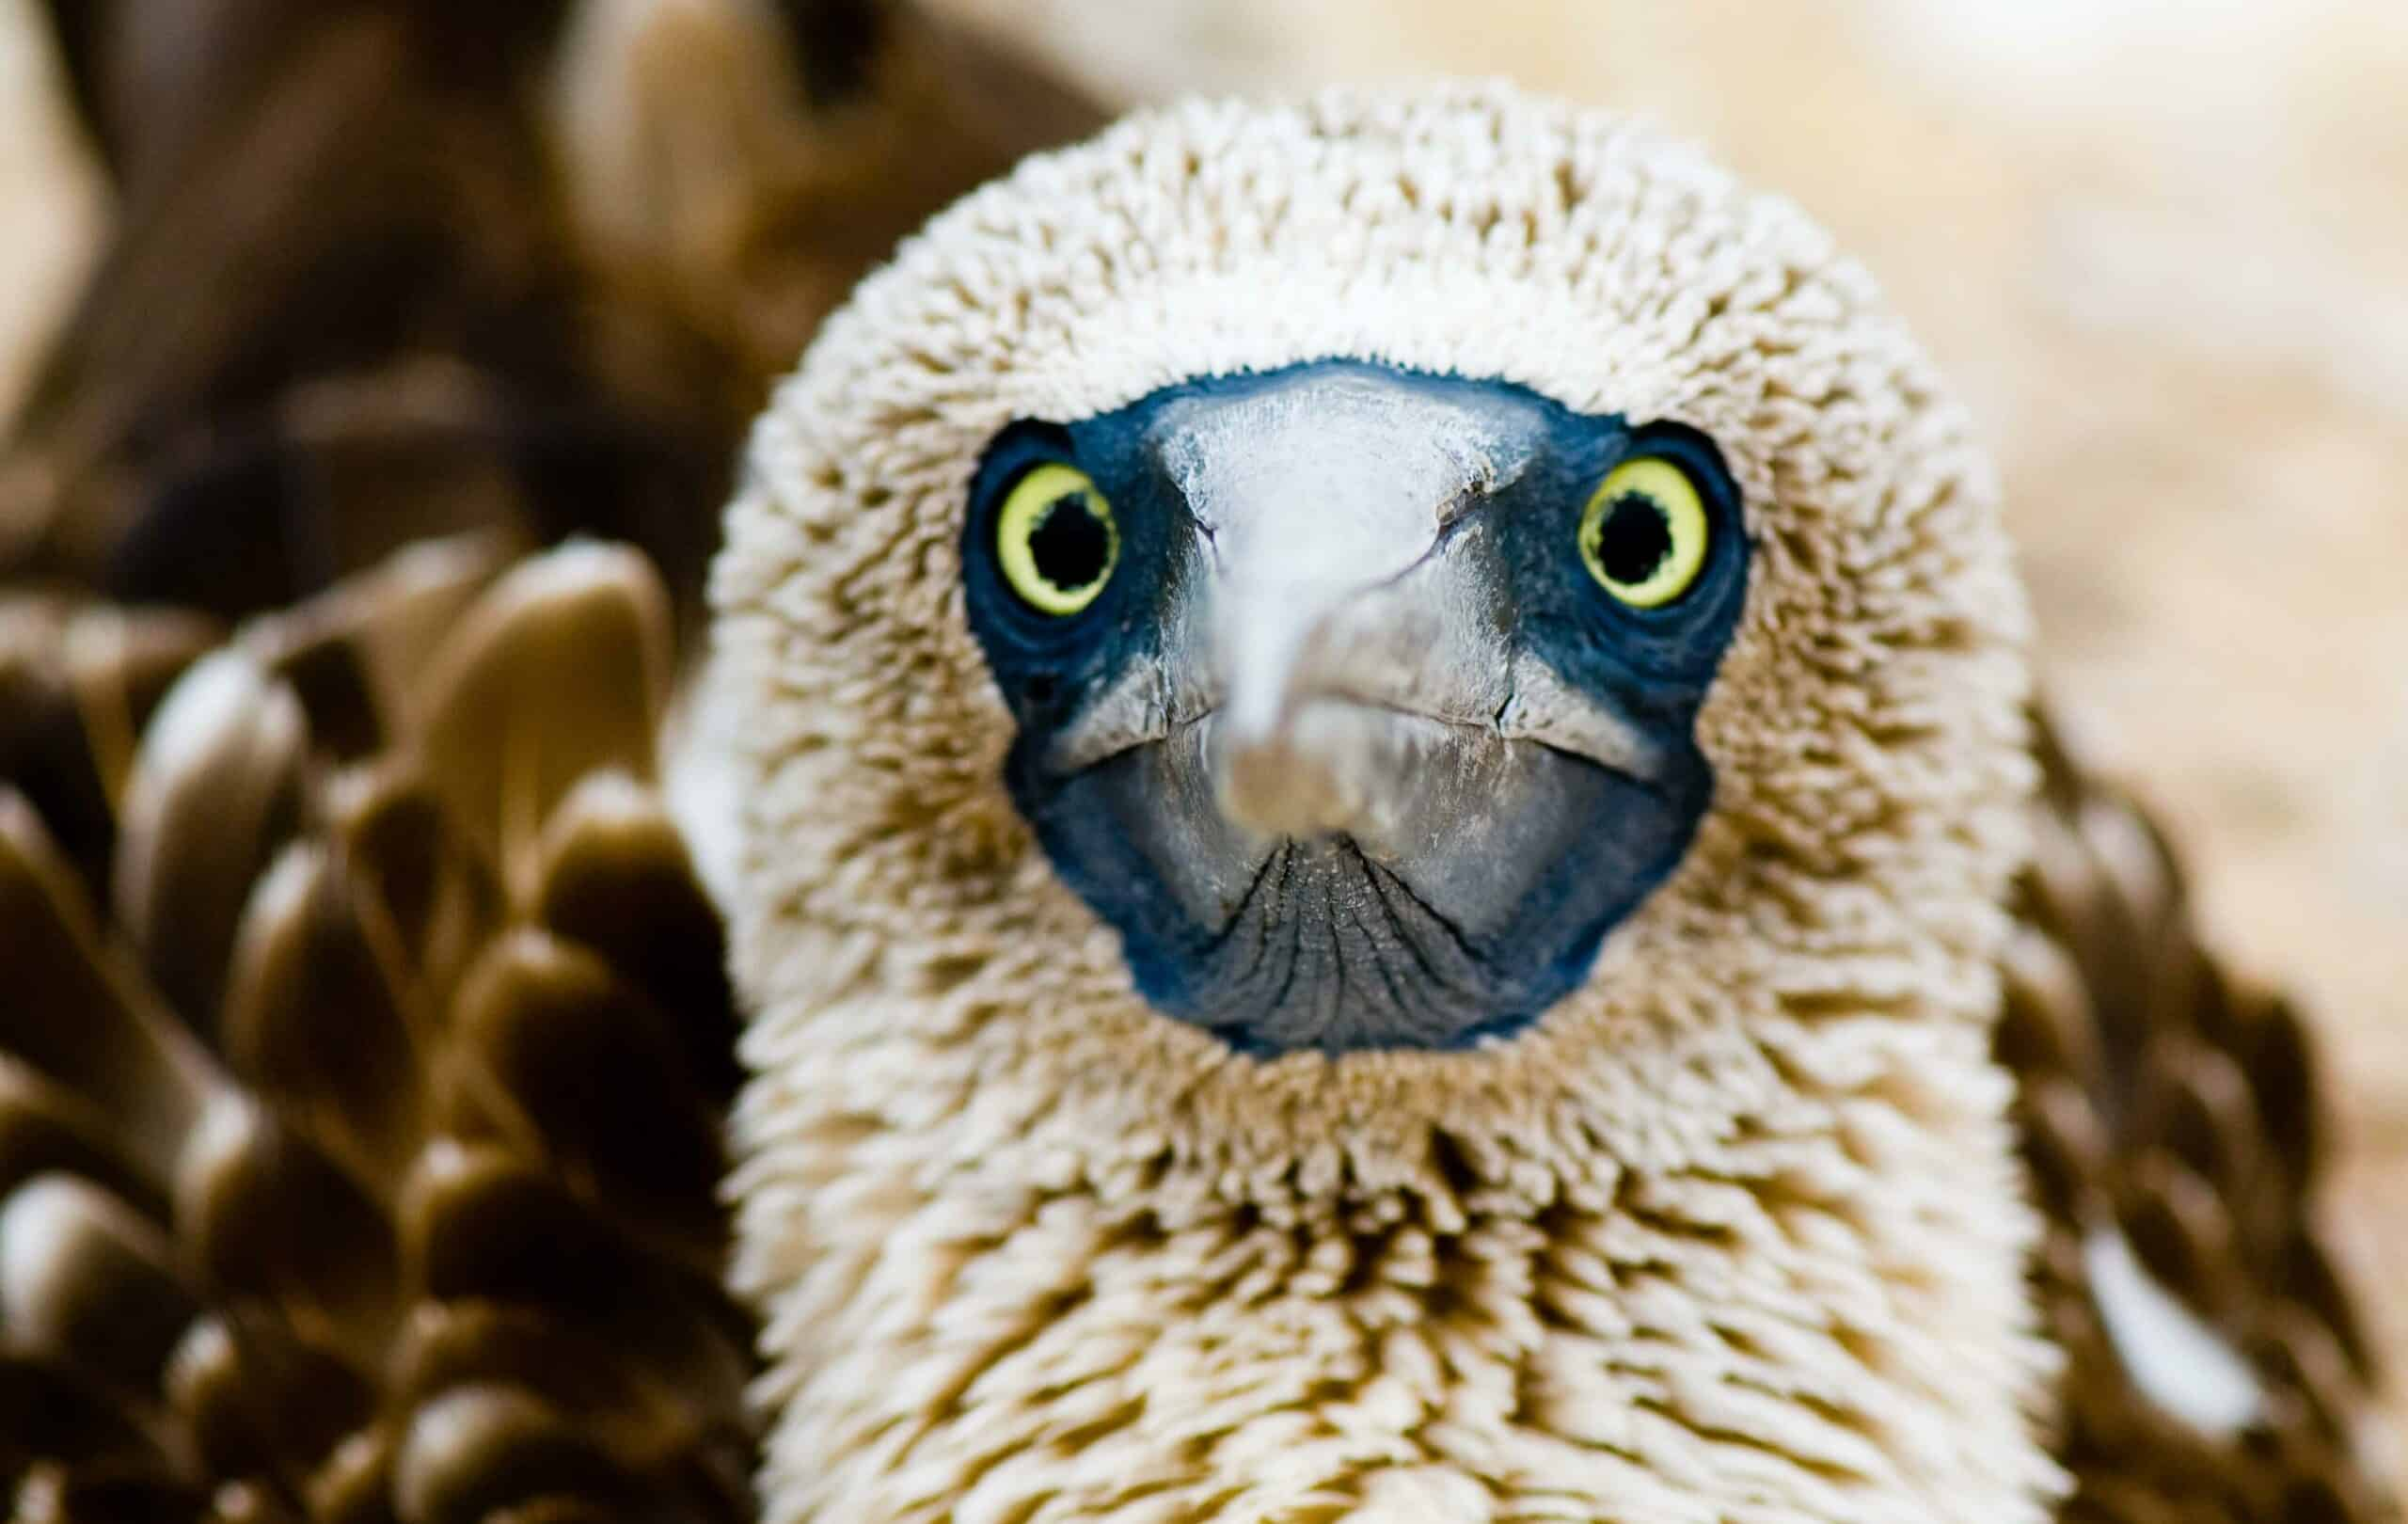 A close-up view of a Blue-footed Booby. © Roderic Mast